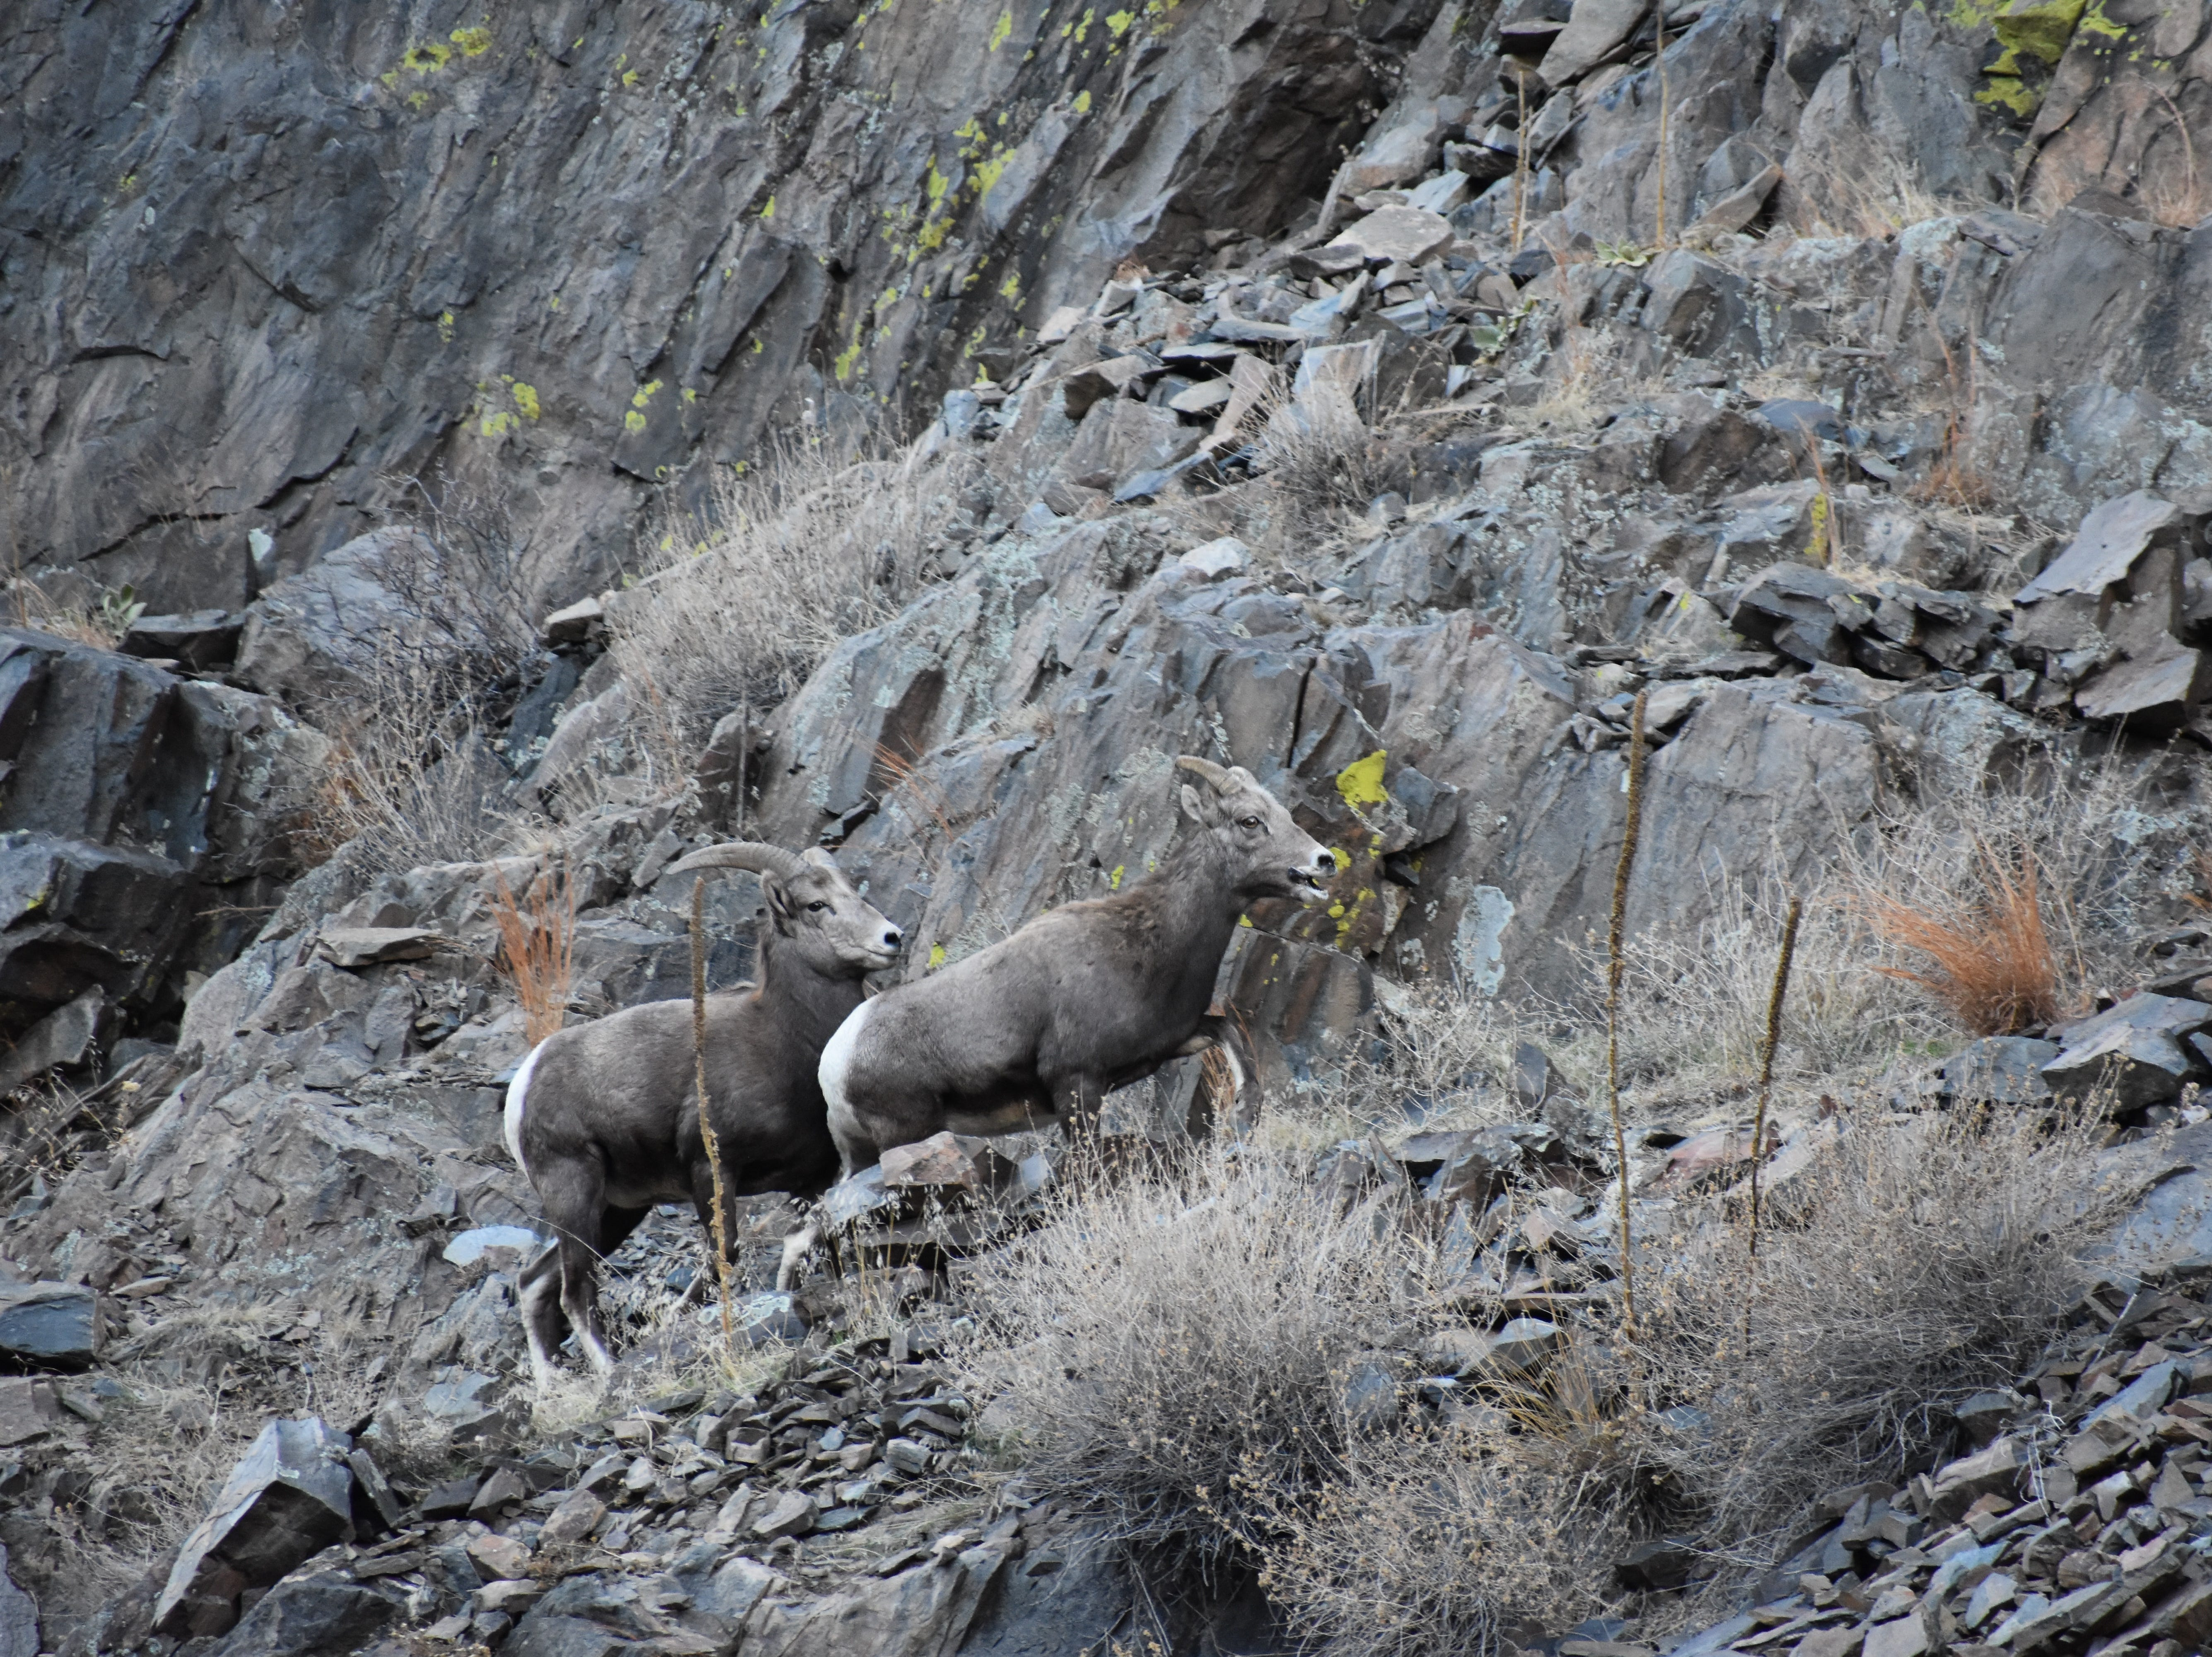 The Big Thompson Canyon bighorn sheep herd can usually be found near the mouth of the canyon on the north side of U.S. Highway 34. Please make sure to only use designated pullouts when looking for or viewing bighorns.